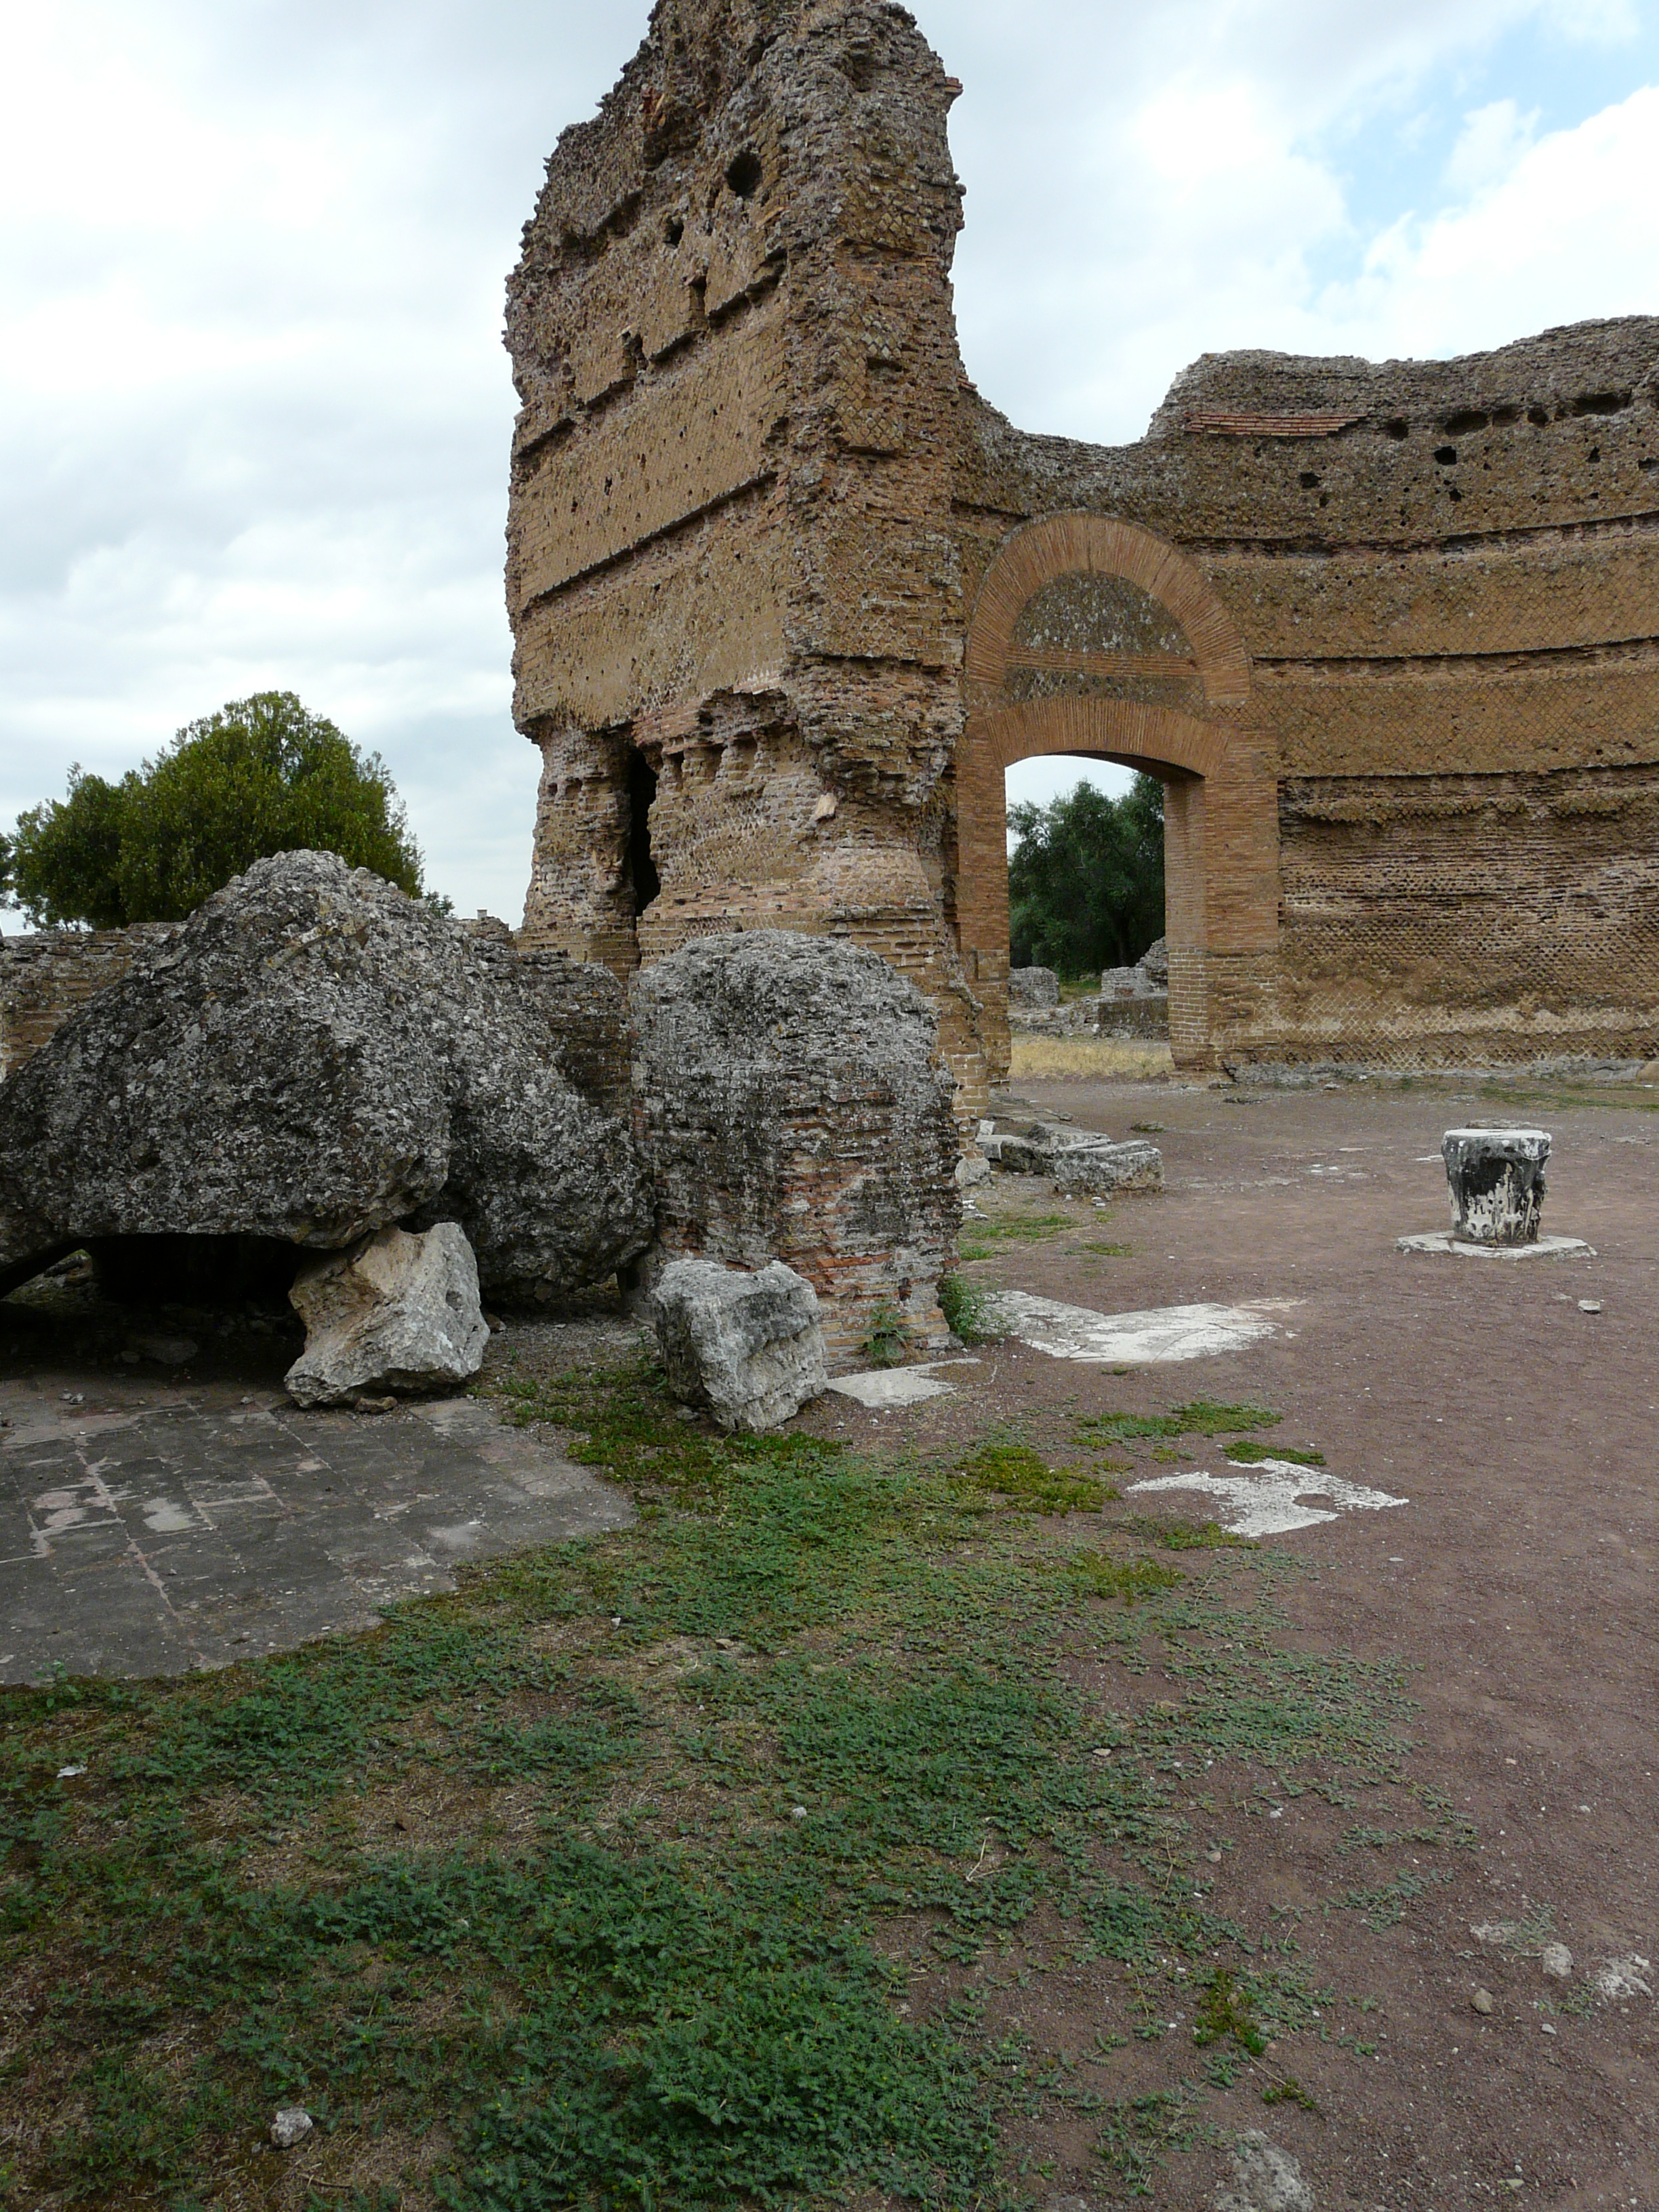 © Dipartimento di Scienze della Vita, Università di Trieste<br>by Andrea Moro<br>Comune di Tivoli, Villa Adriana, RO, Lazio, Italia, 18/07/2011<br>Distributed under CC-BY-SA 4.0 license.